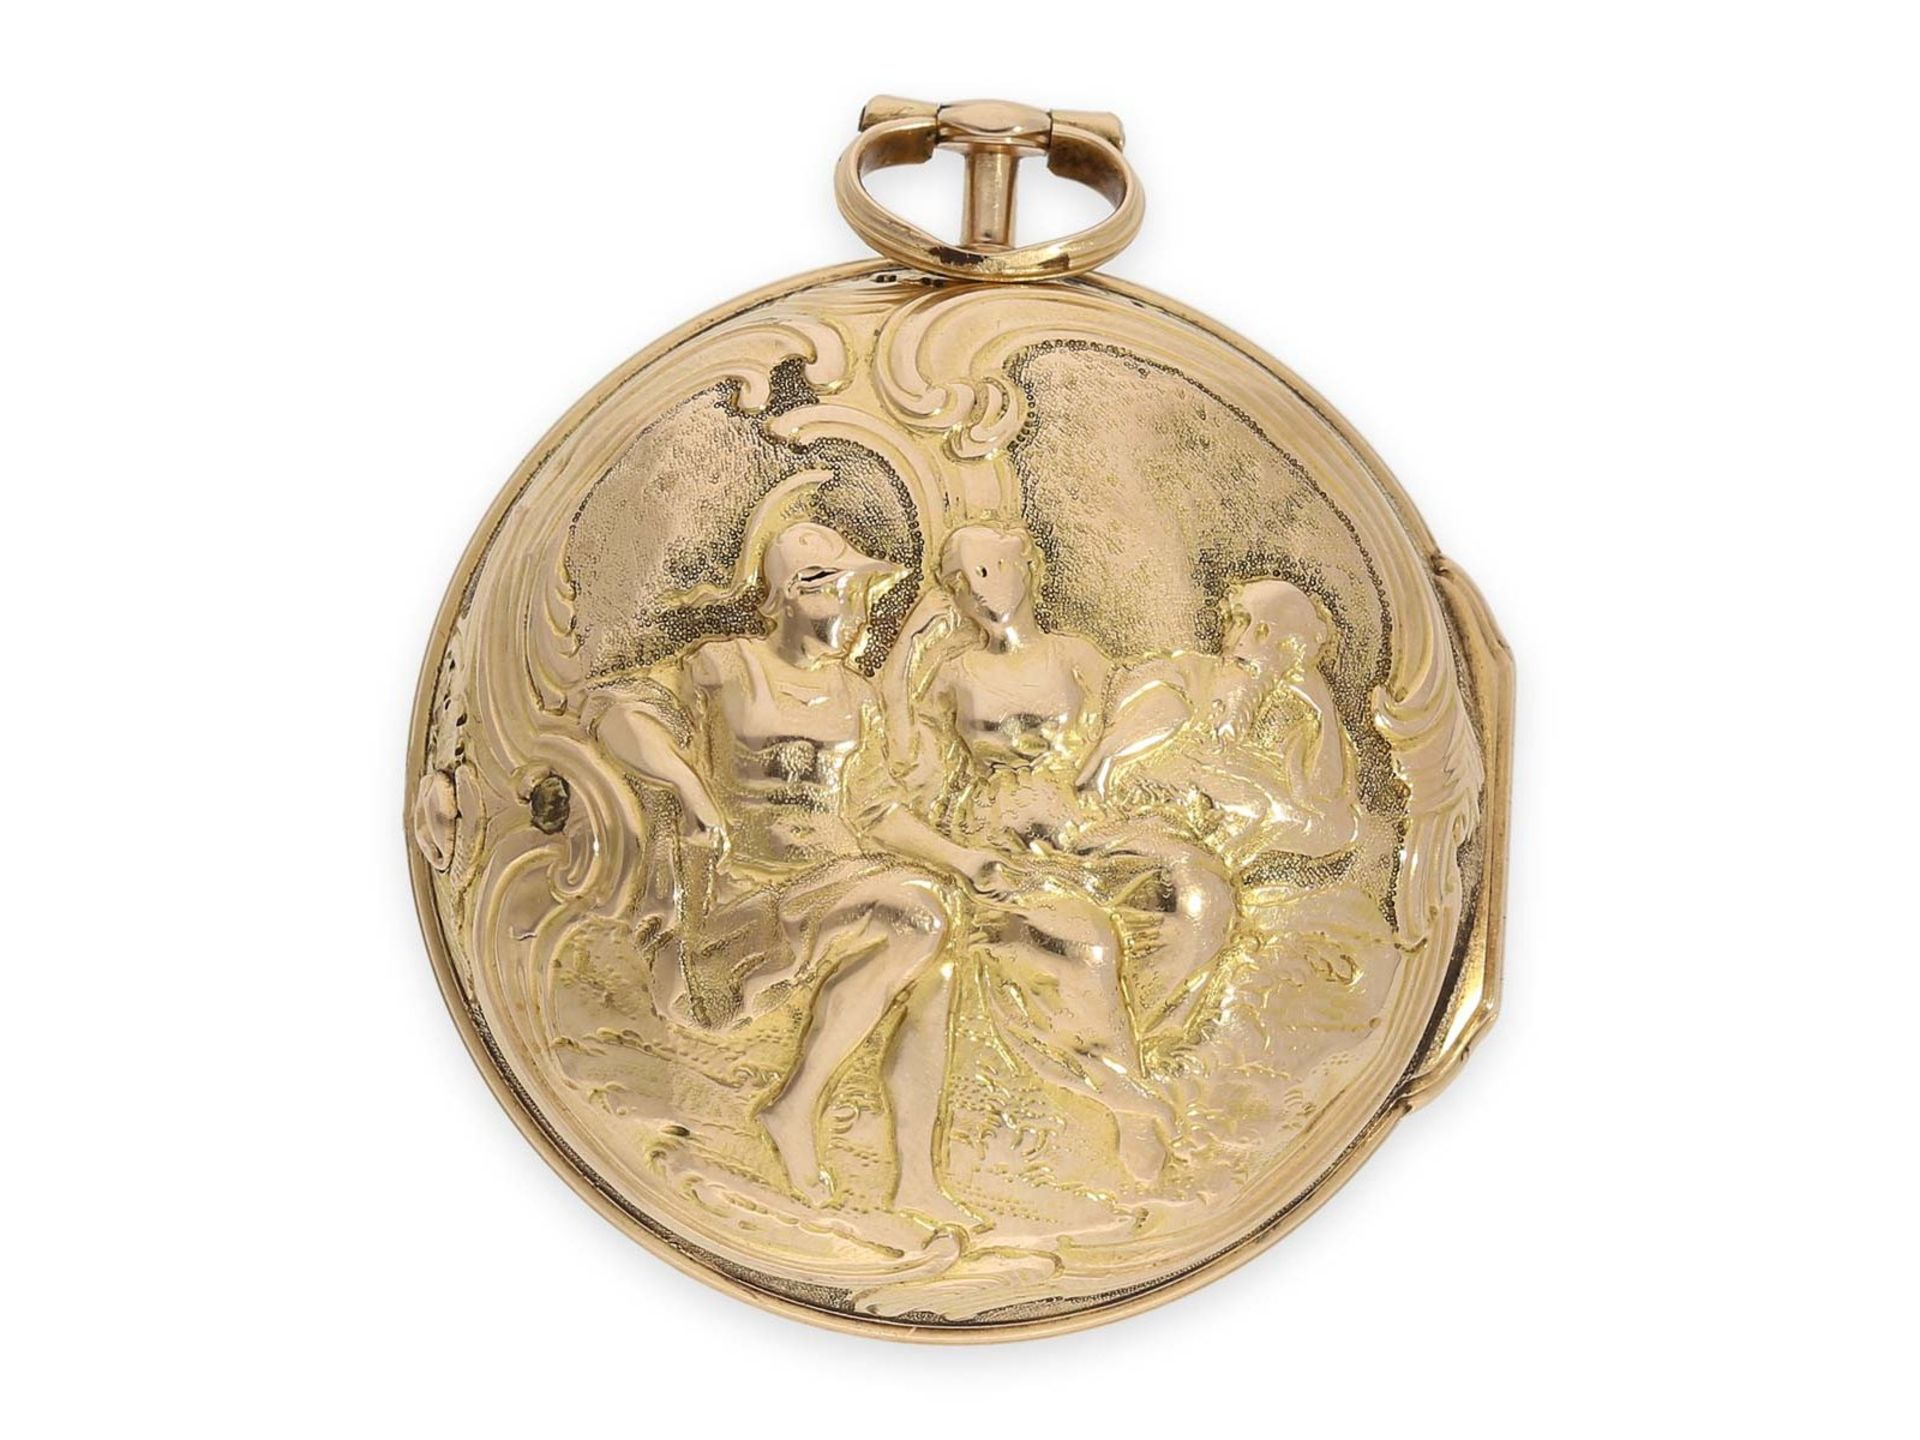 Pocket watch: early triple case gold repousse verge watch, signed Rose London, ca. 1770 - Bild 6 aus 8